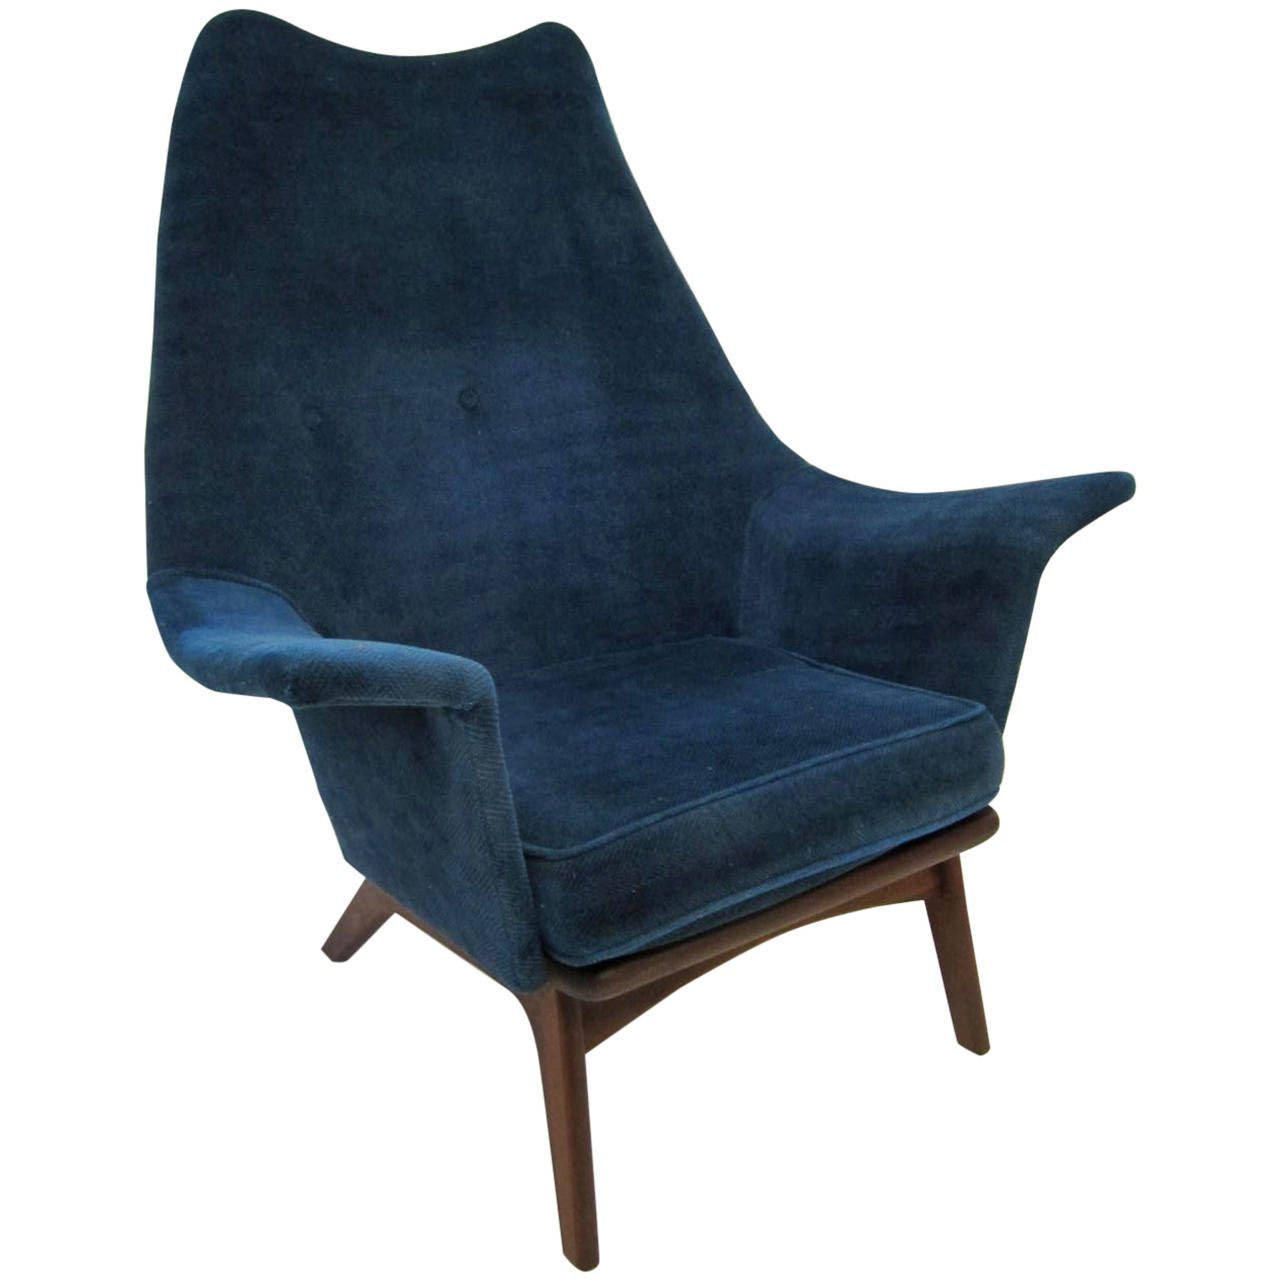 Excellent Adrian Pearsall Wingback Lounge Chair Mid-Century Modern